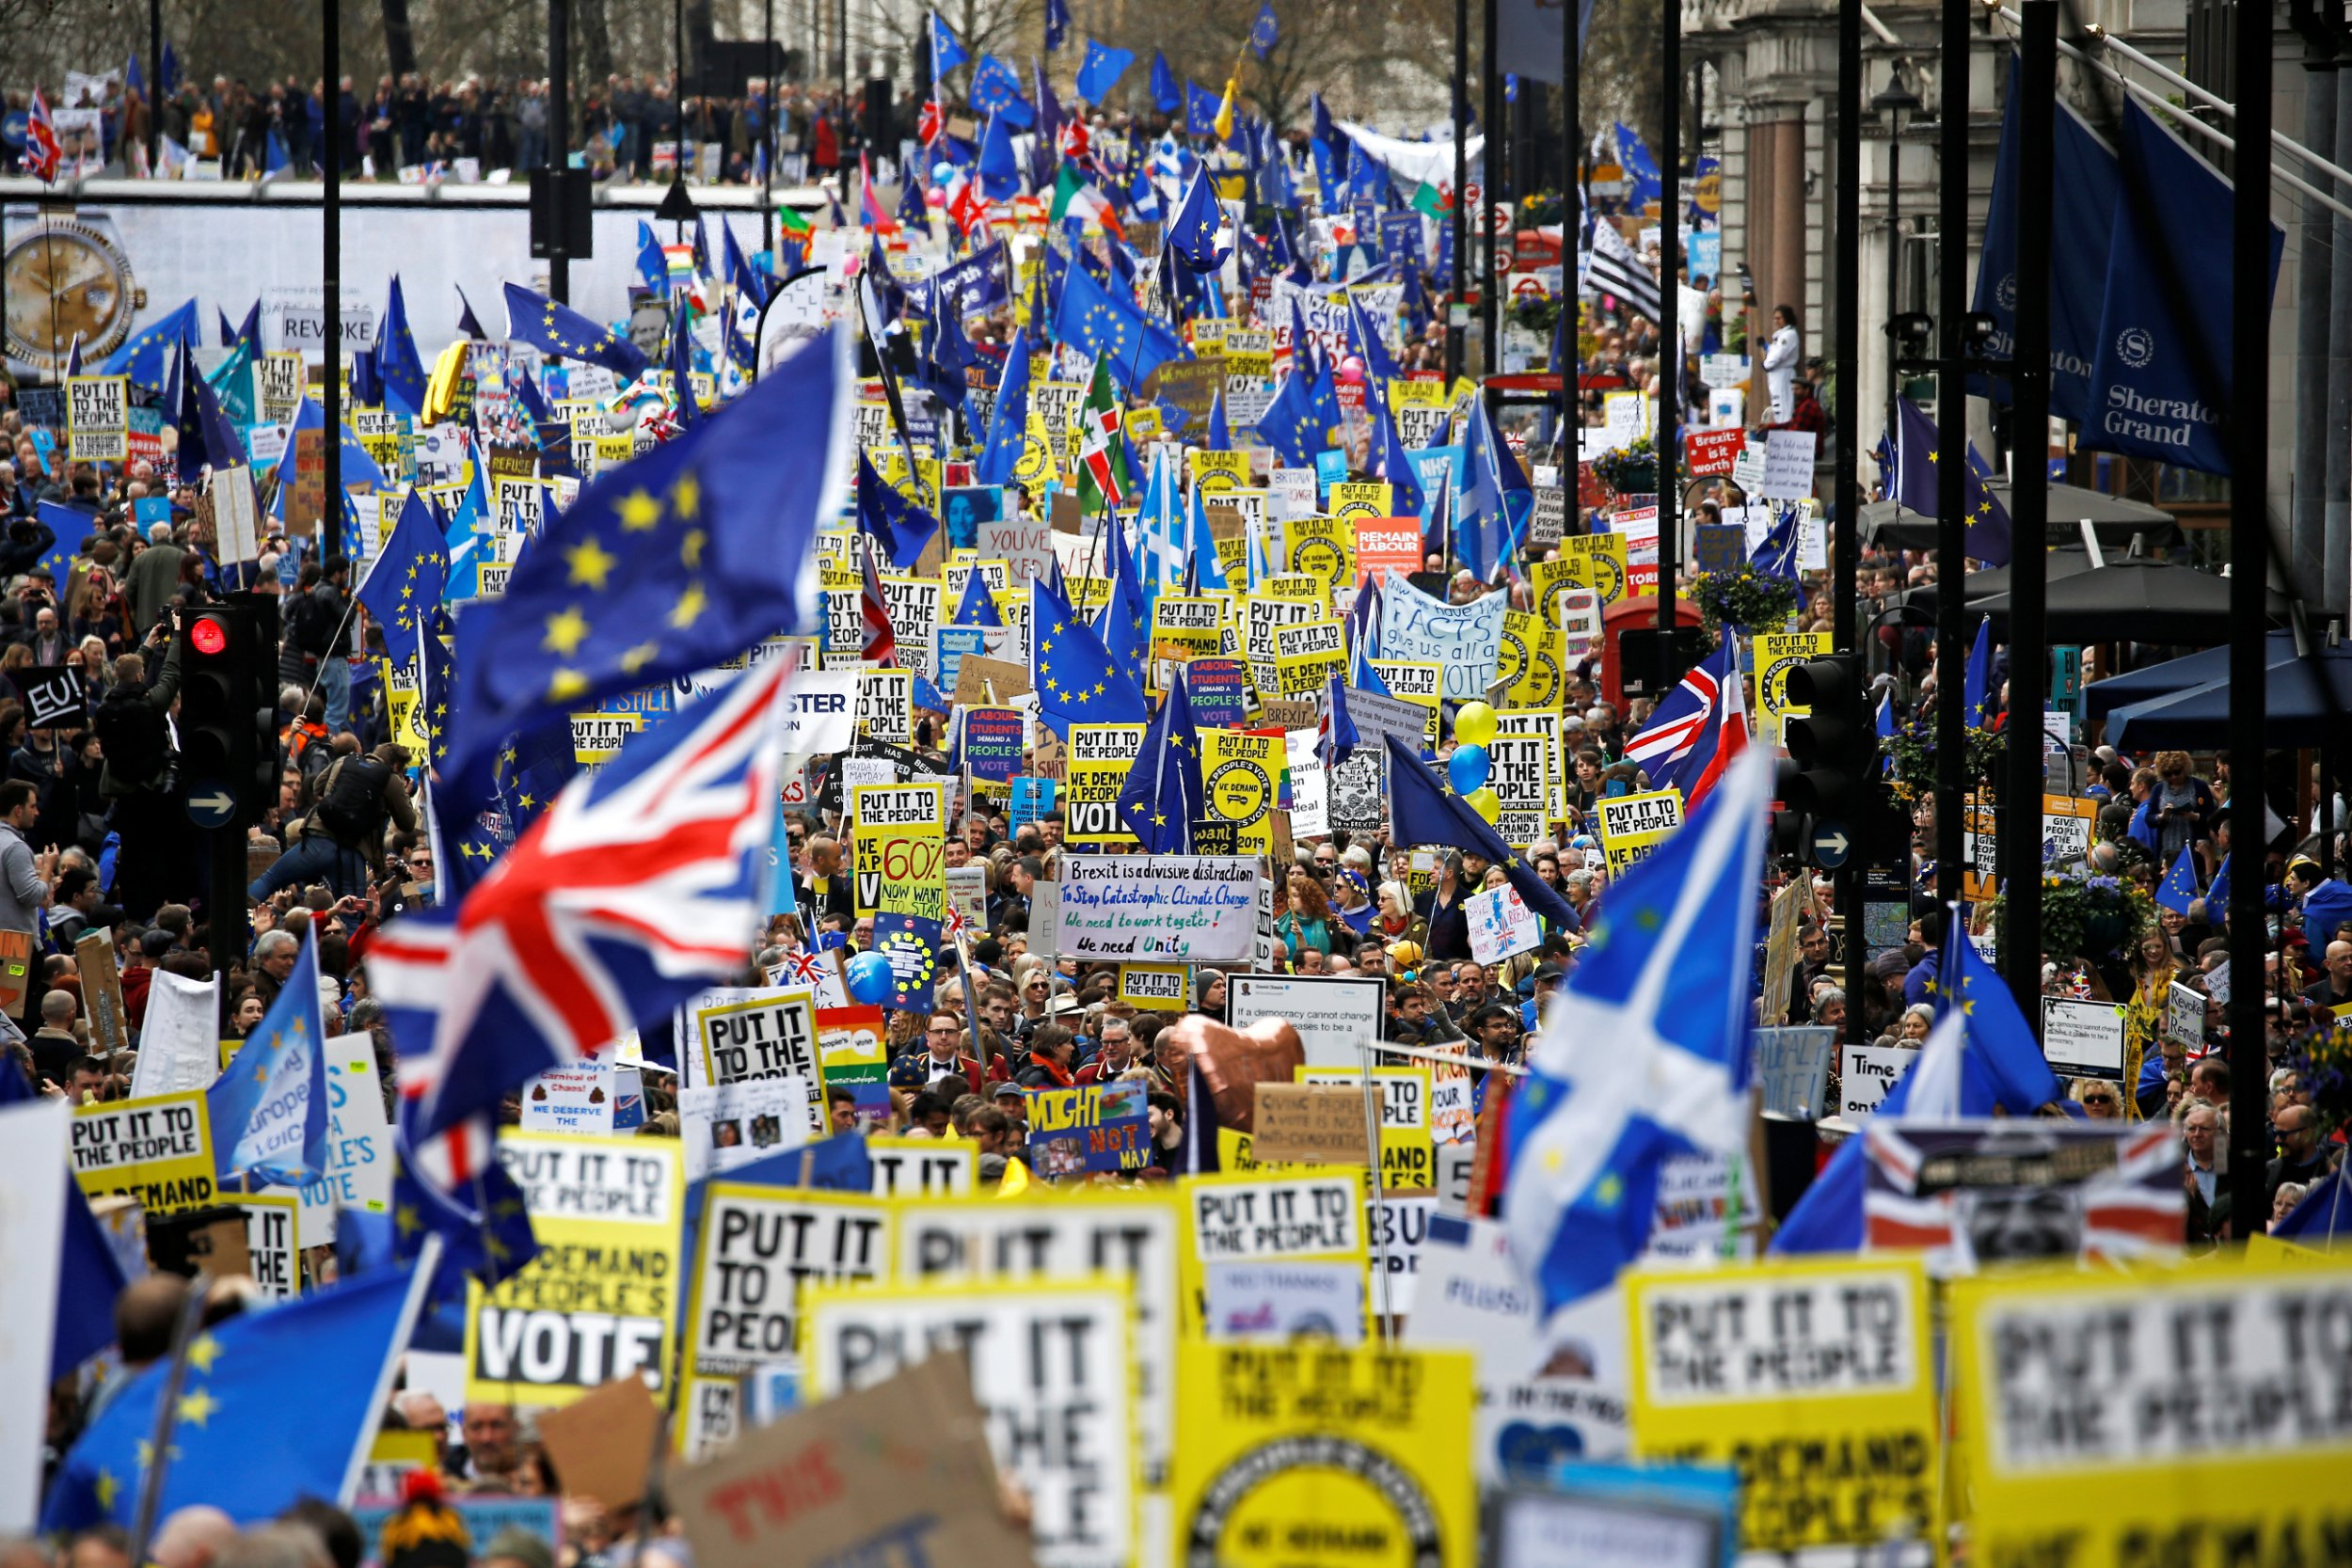 Brexit march: Hundreds of thousands head to London demanding People's Vote